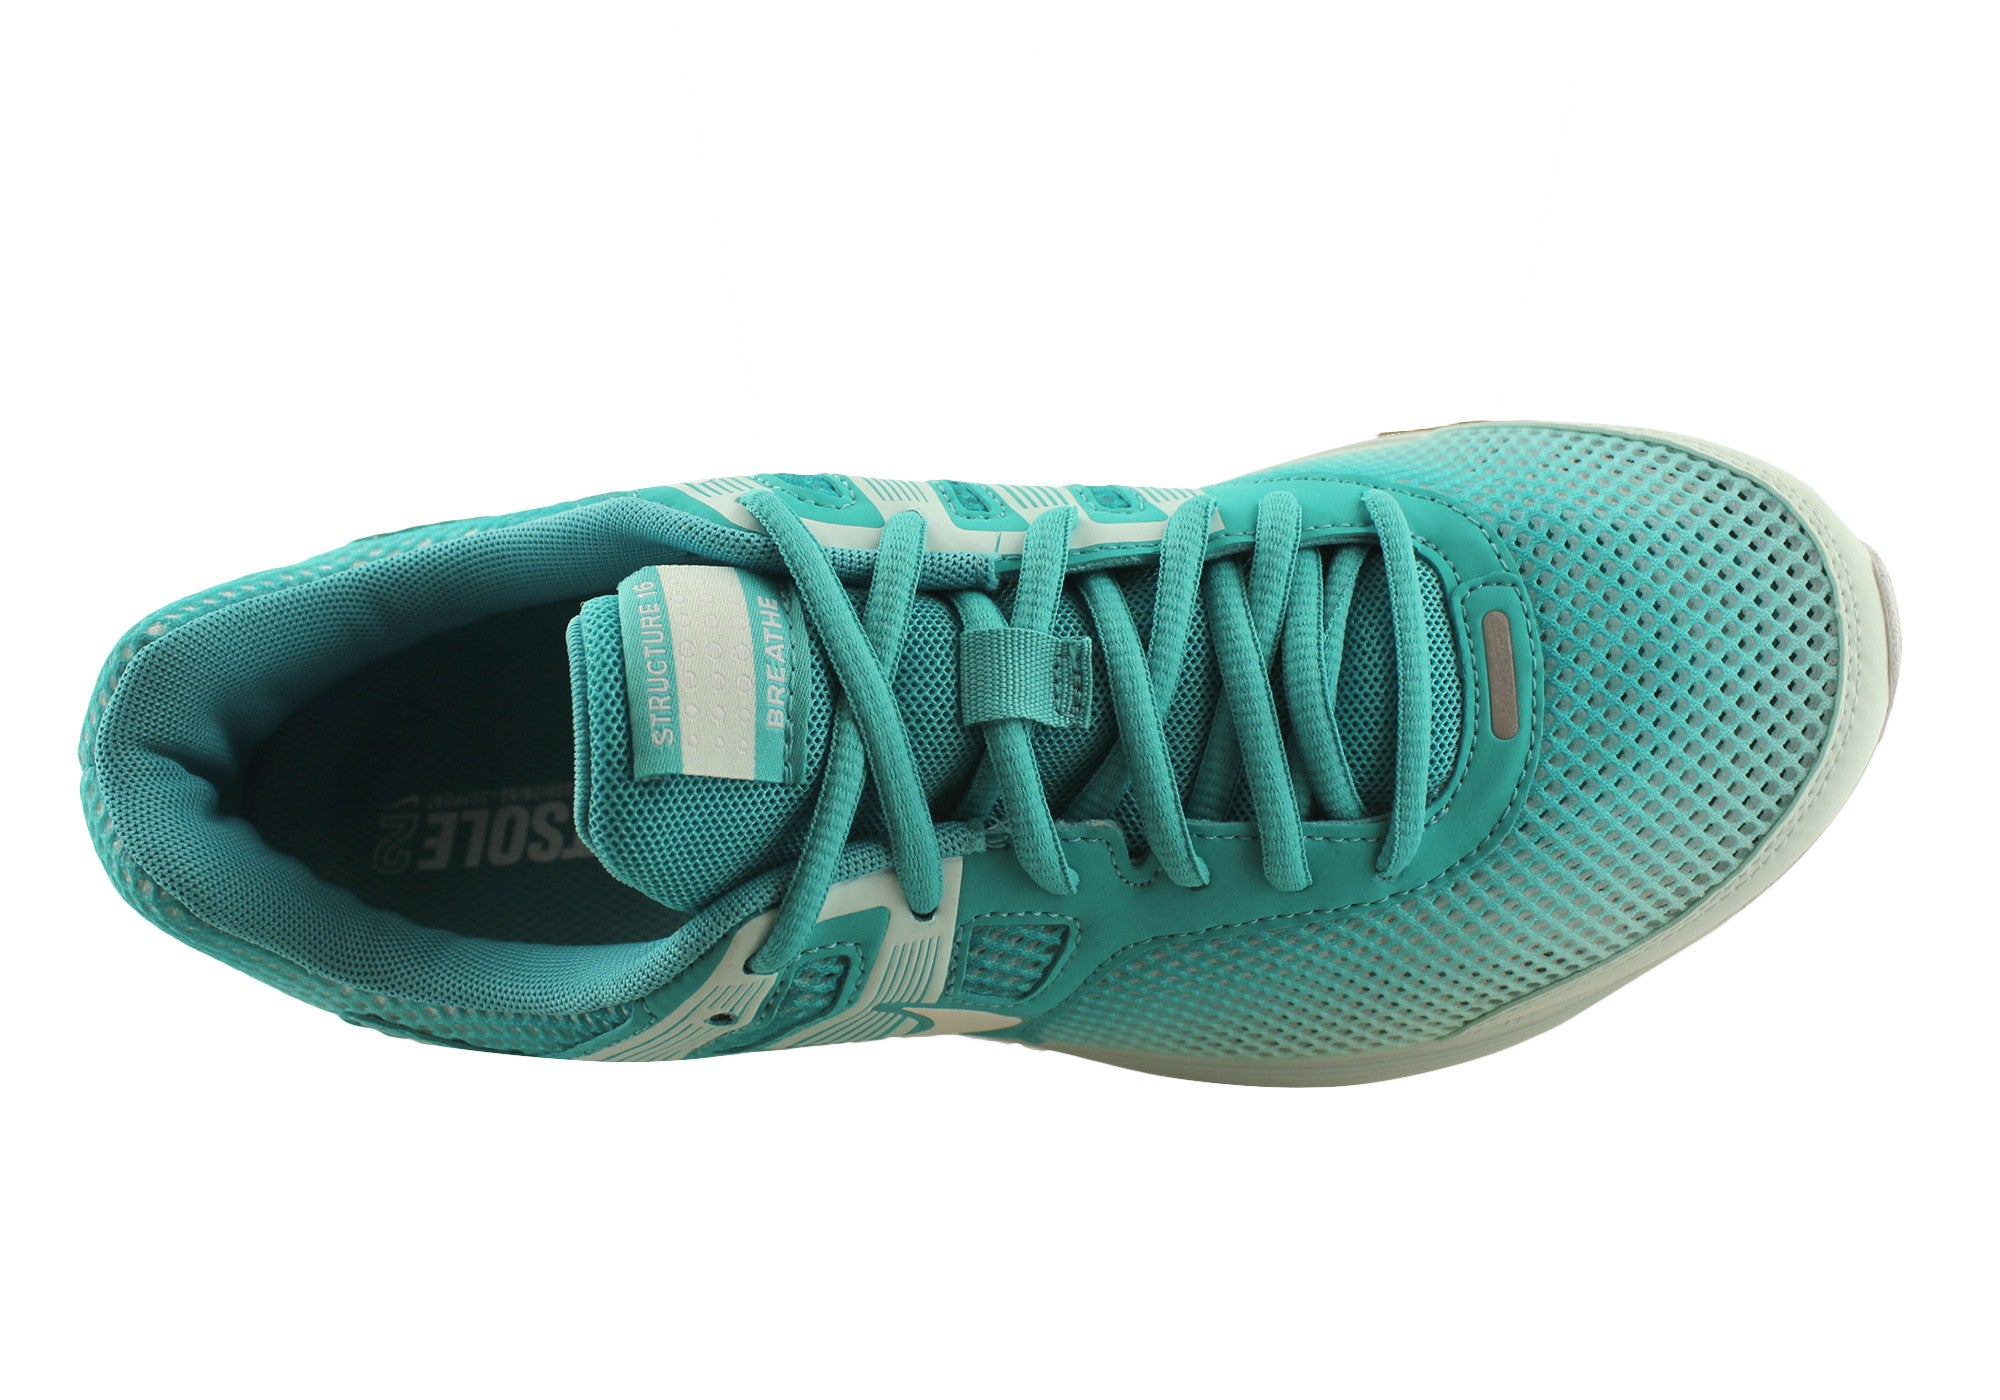 fddc48076061 Nike Zoom Structure+16 Womens Running Shoes